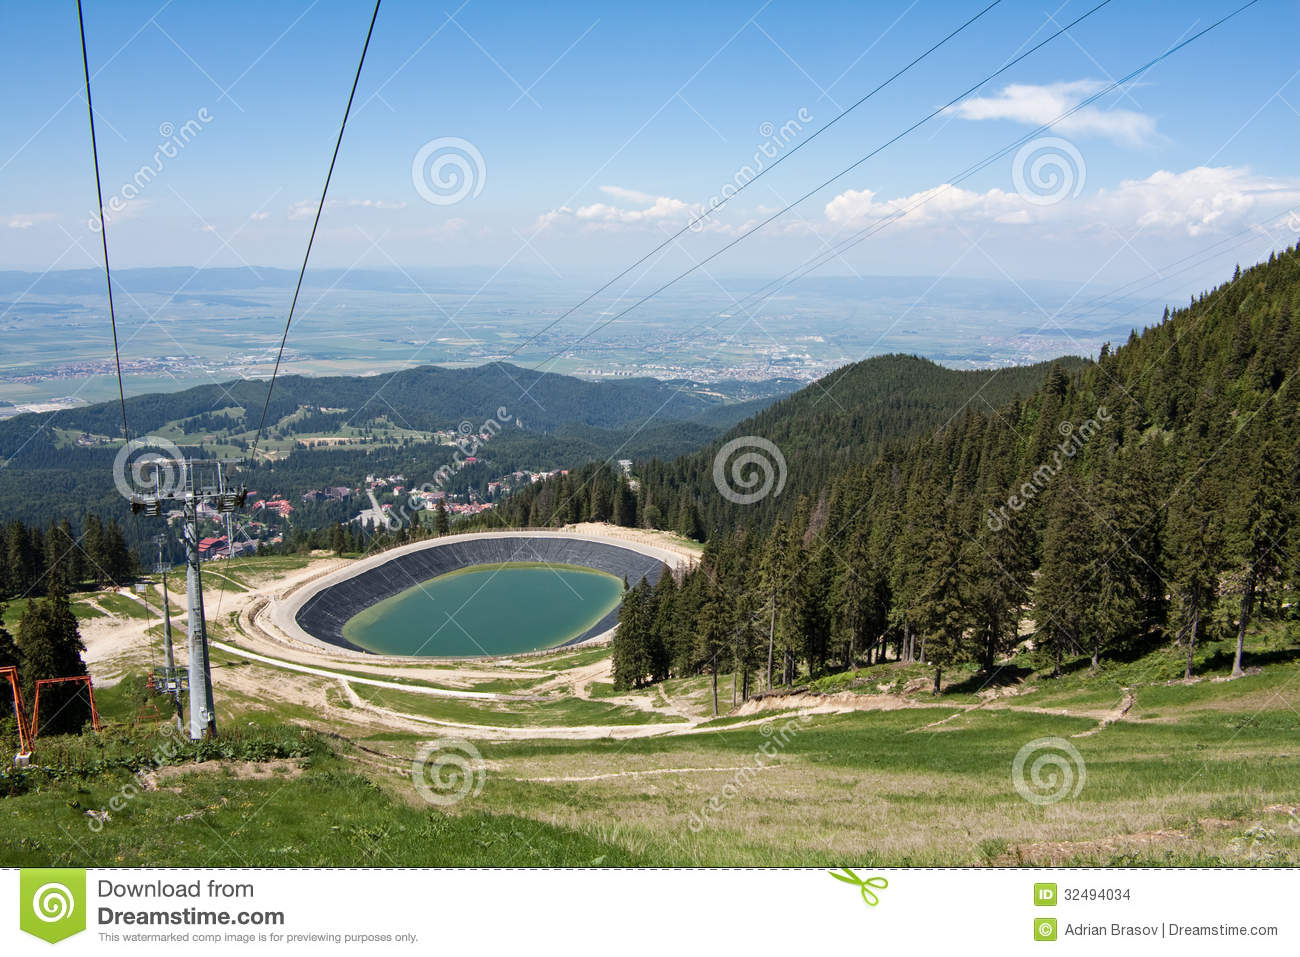 Artificial Lake For Artificial Snow Stock Photo Image